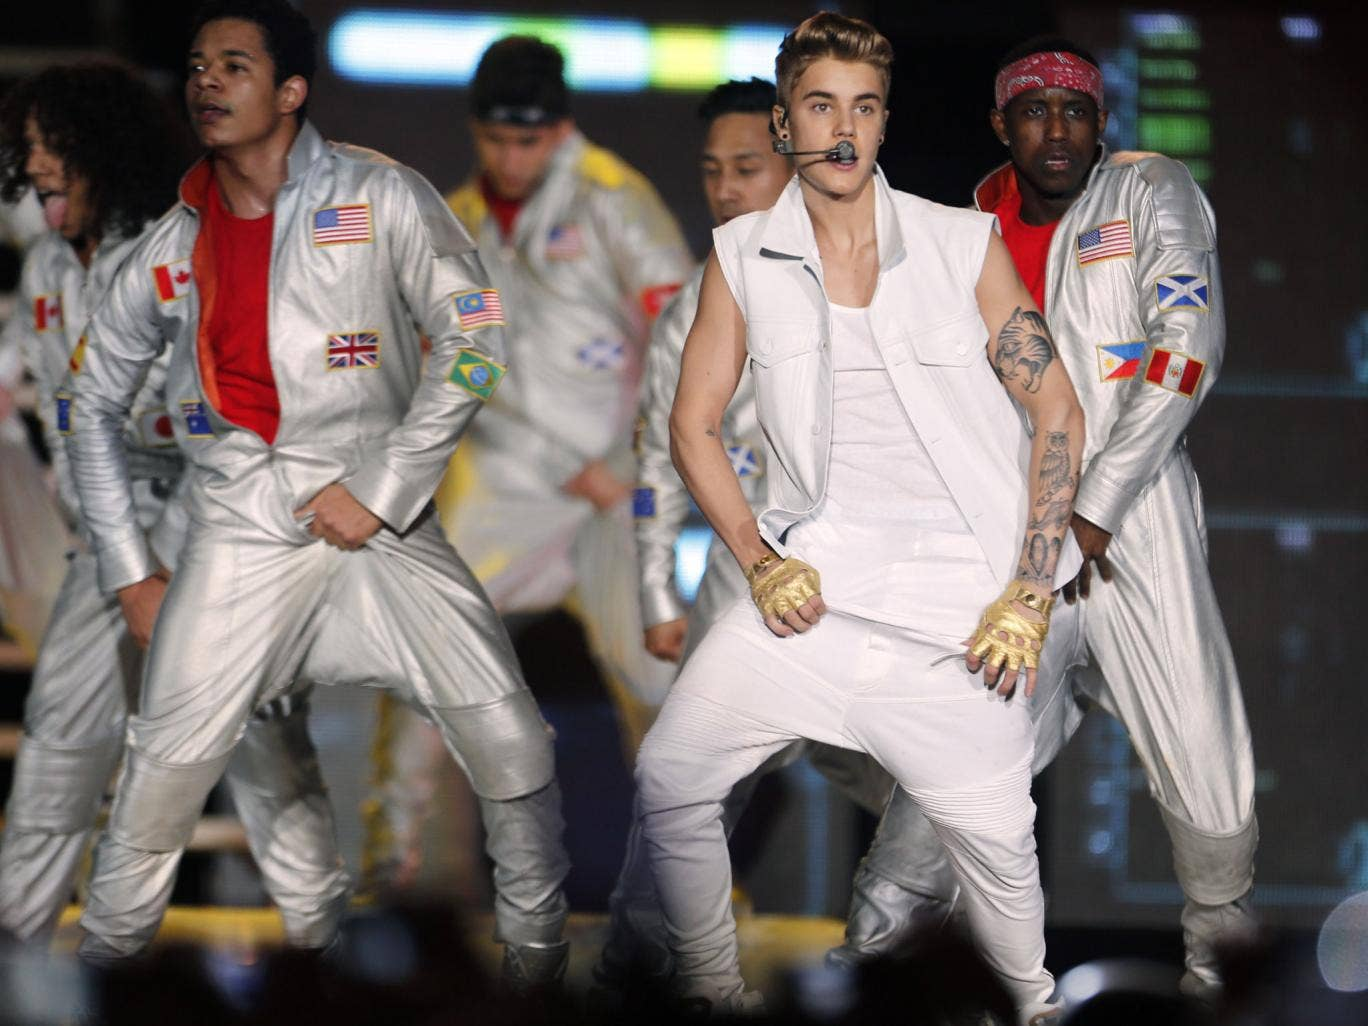 There was drama in Dubai when Justin Bieber was grabbed by a fan